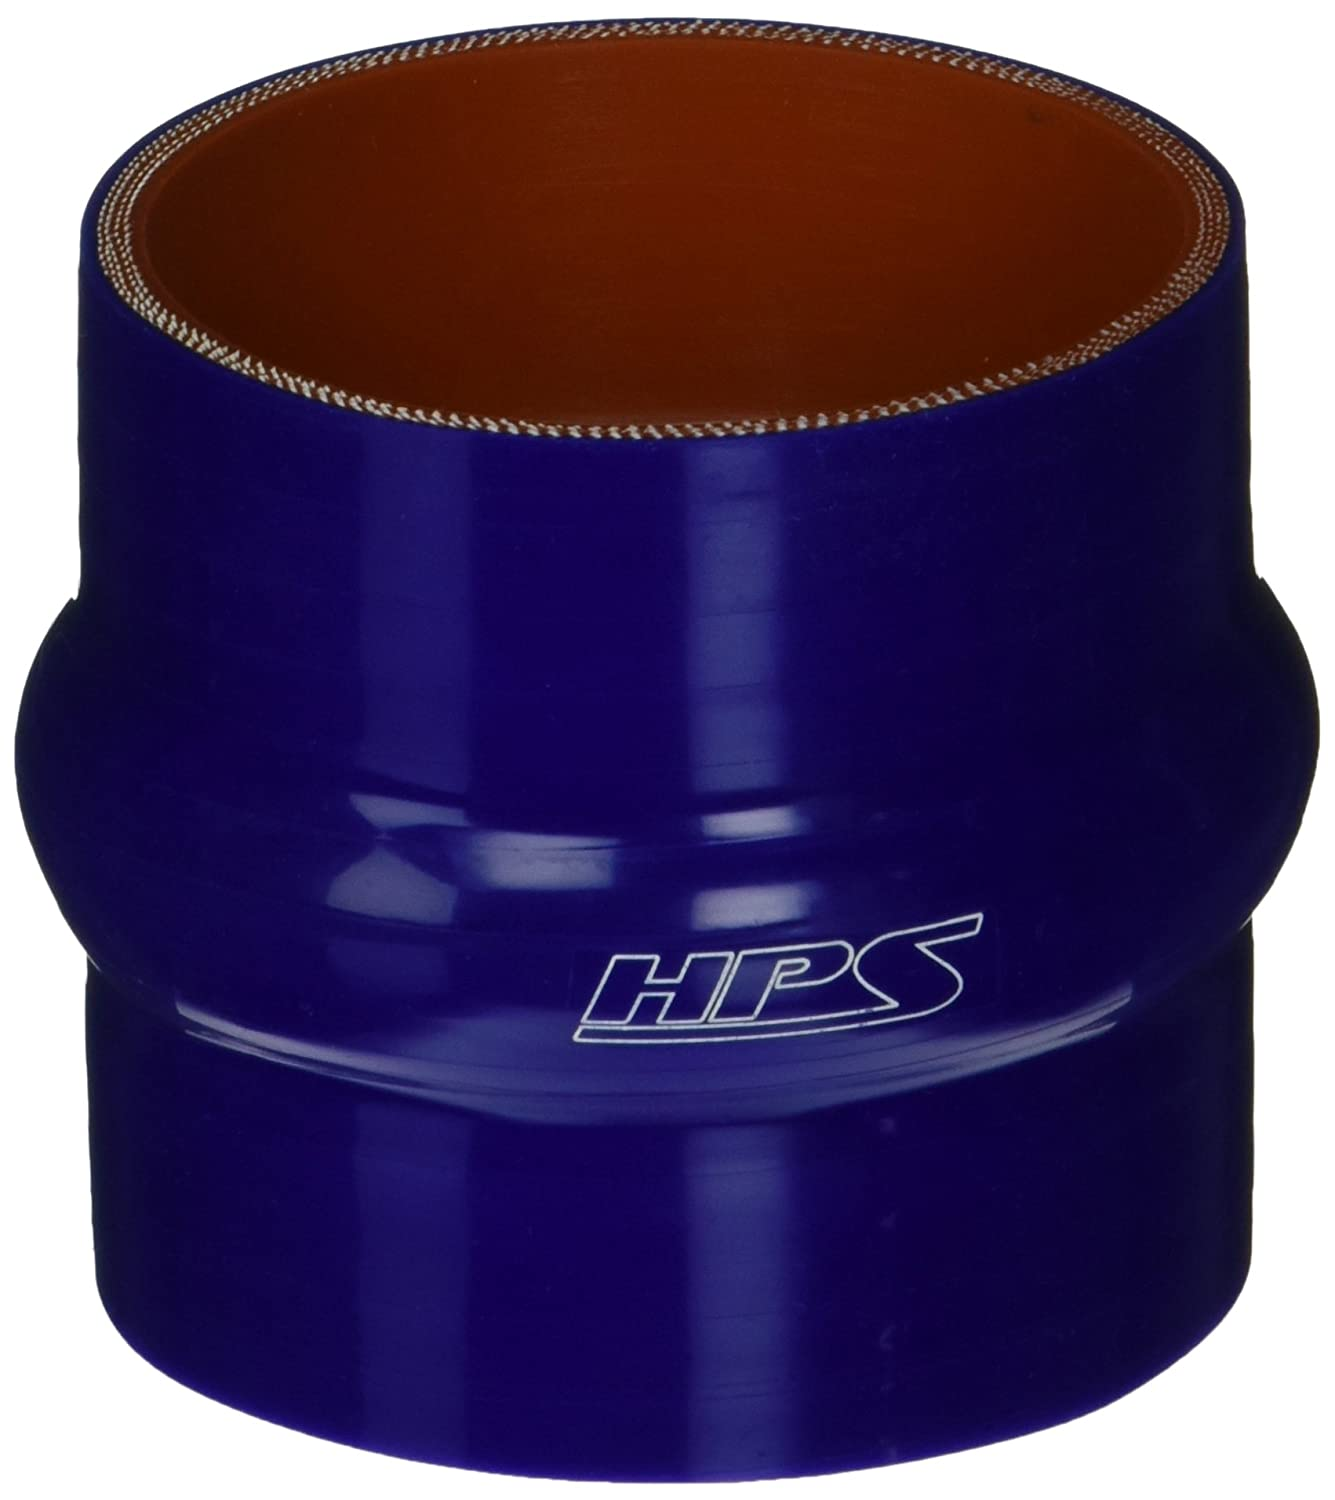 Blue 3 Length 3 ID HPS Silicone Hoses 60 PSI Maximum Pressure 3 Length 3 ID HPS HTSHC-300-BLUE Silicone High Temperature 4-ply Reinforced Straight Hump Coupler Hose